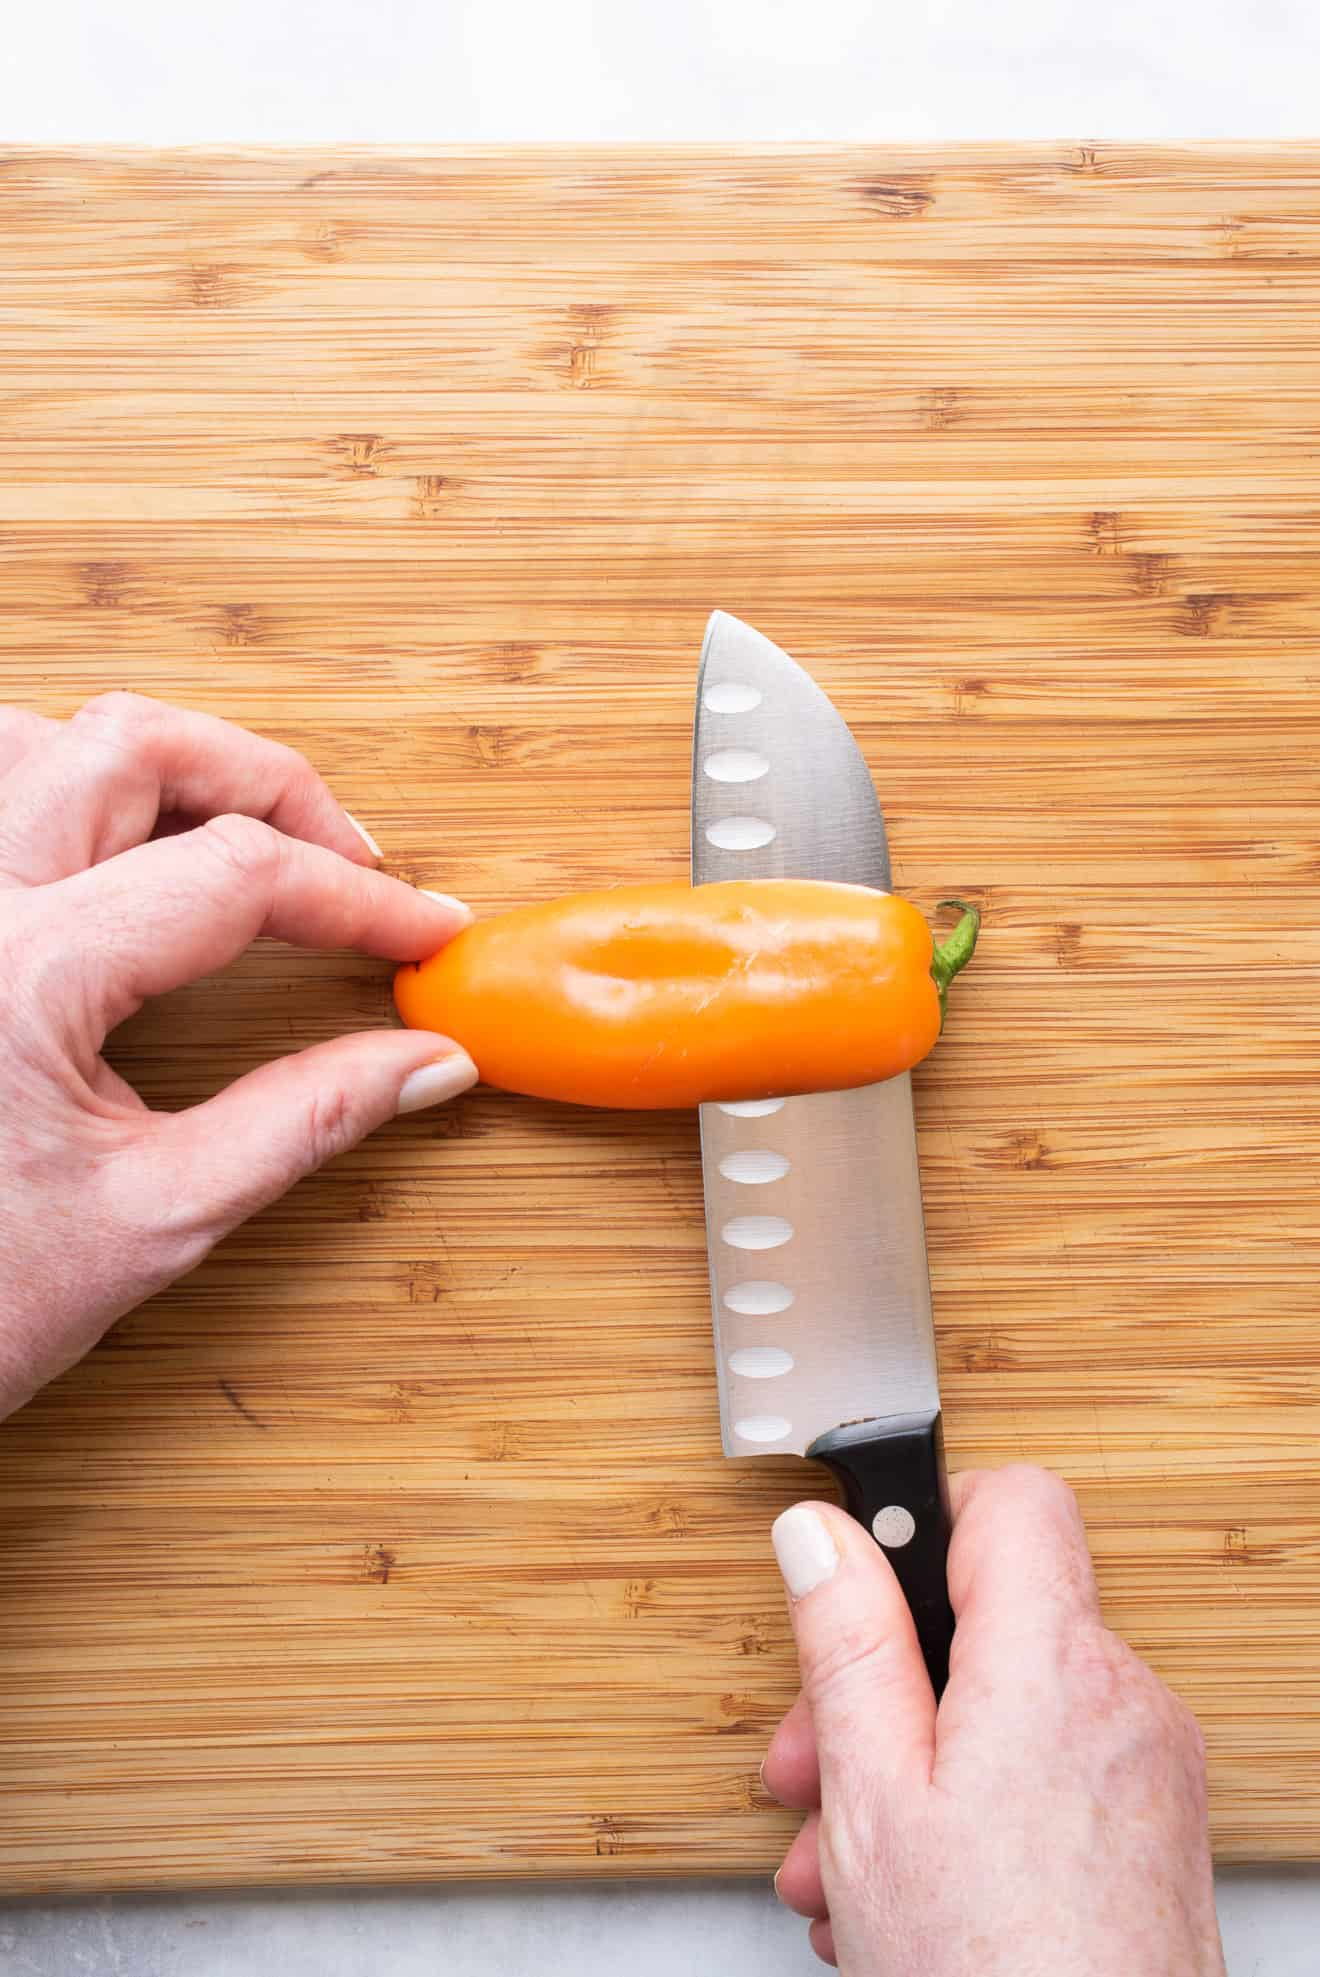 Cutting a mini pepper lengthwise